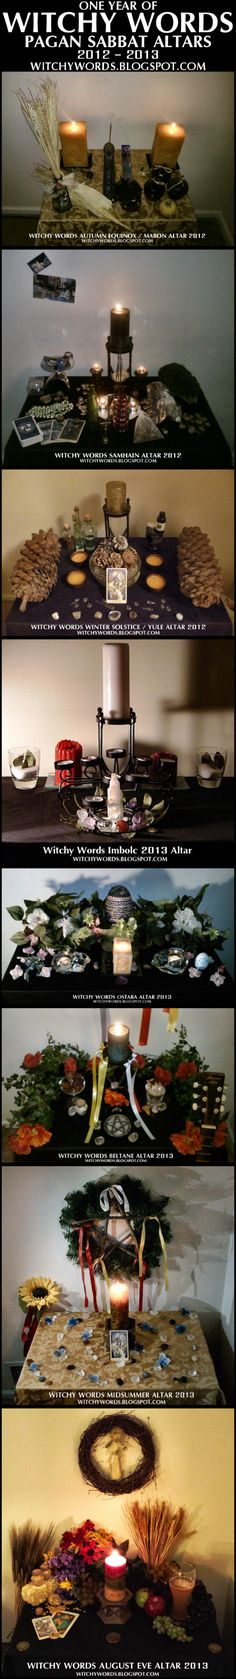 Witchy Words: One Year of Pagan Sabbat Altars.